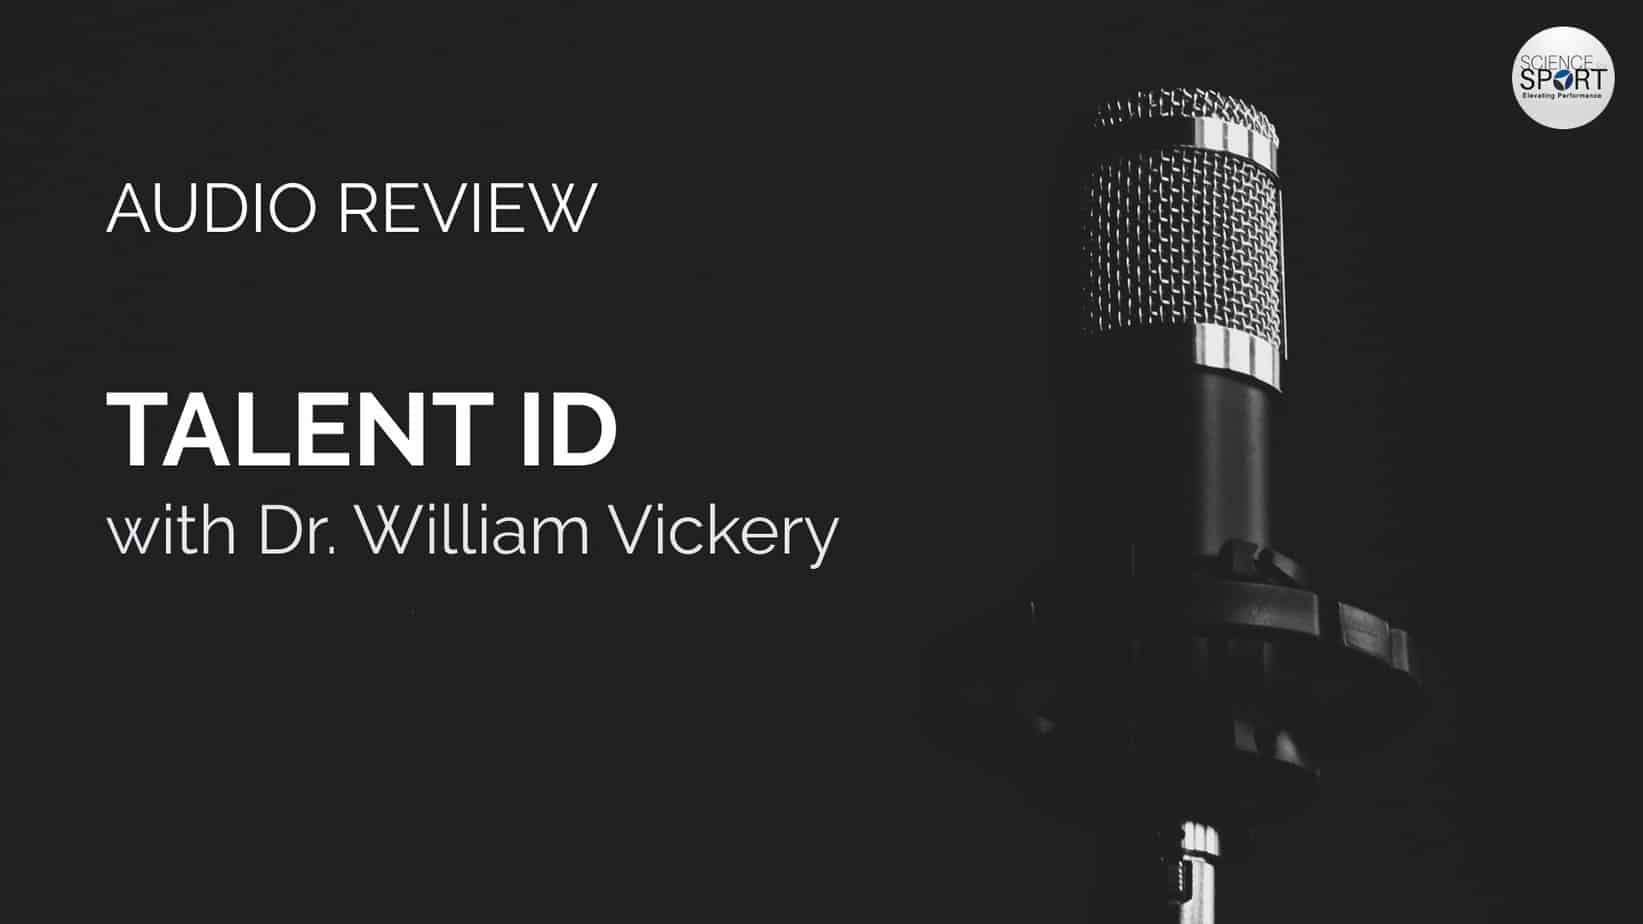 Talent ID - Dr. William Vickery - Audio Review - Science for Sport